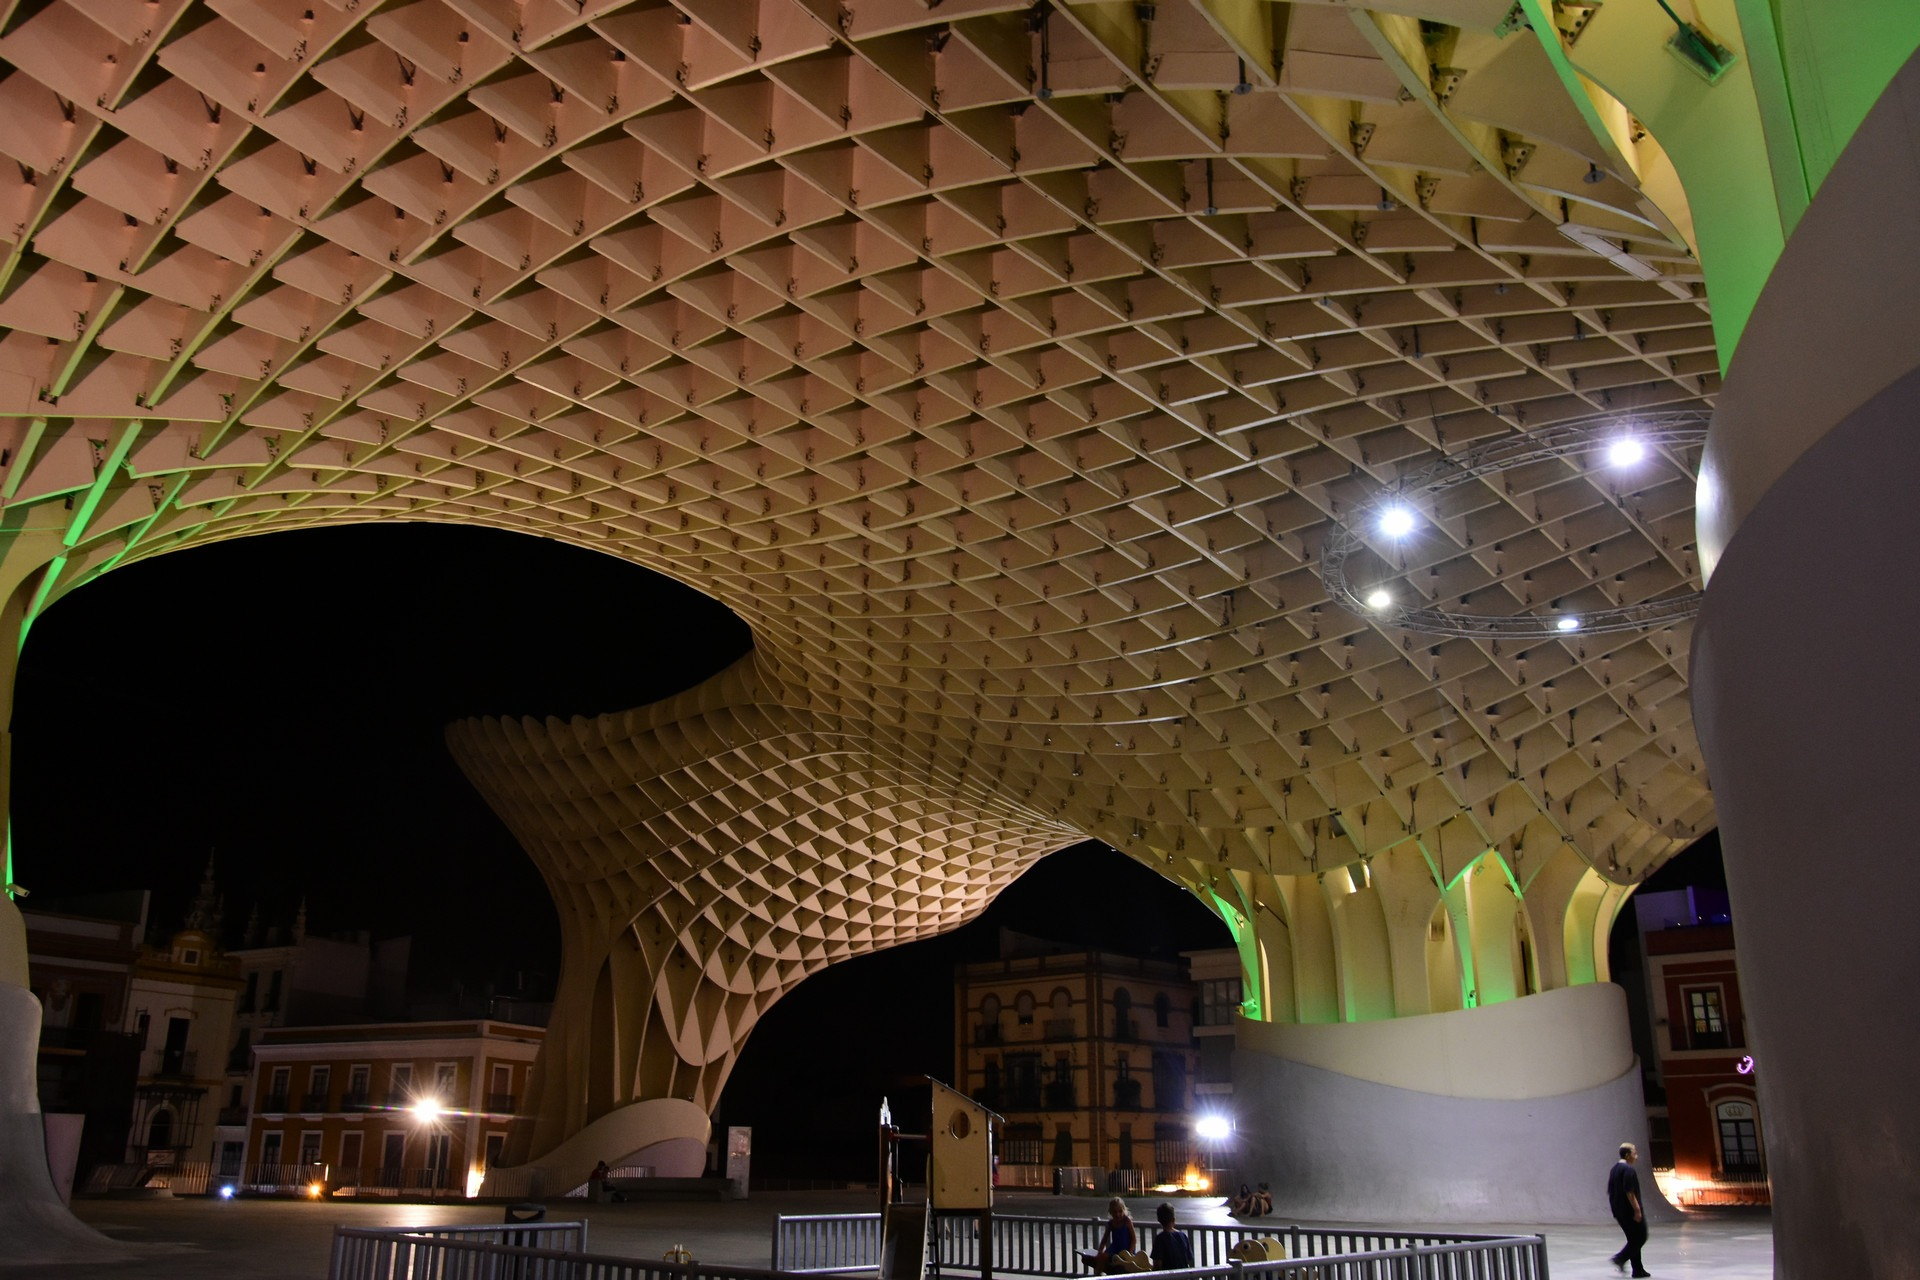 Spain – First evening in Seville